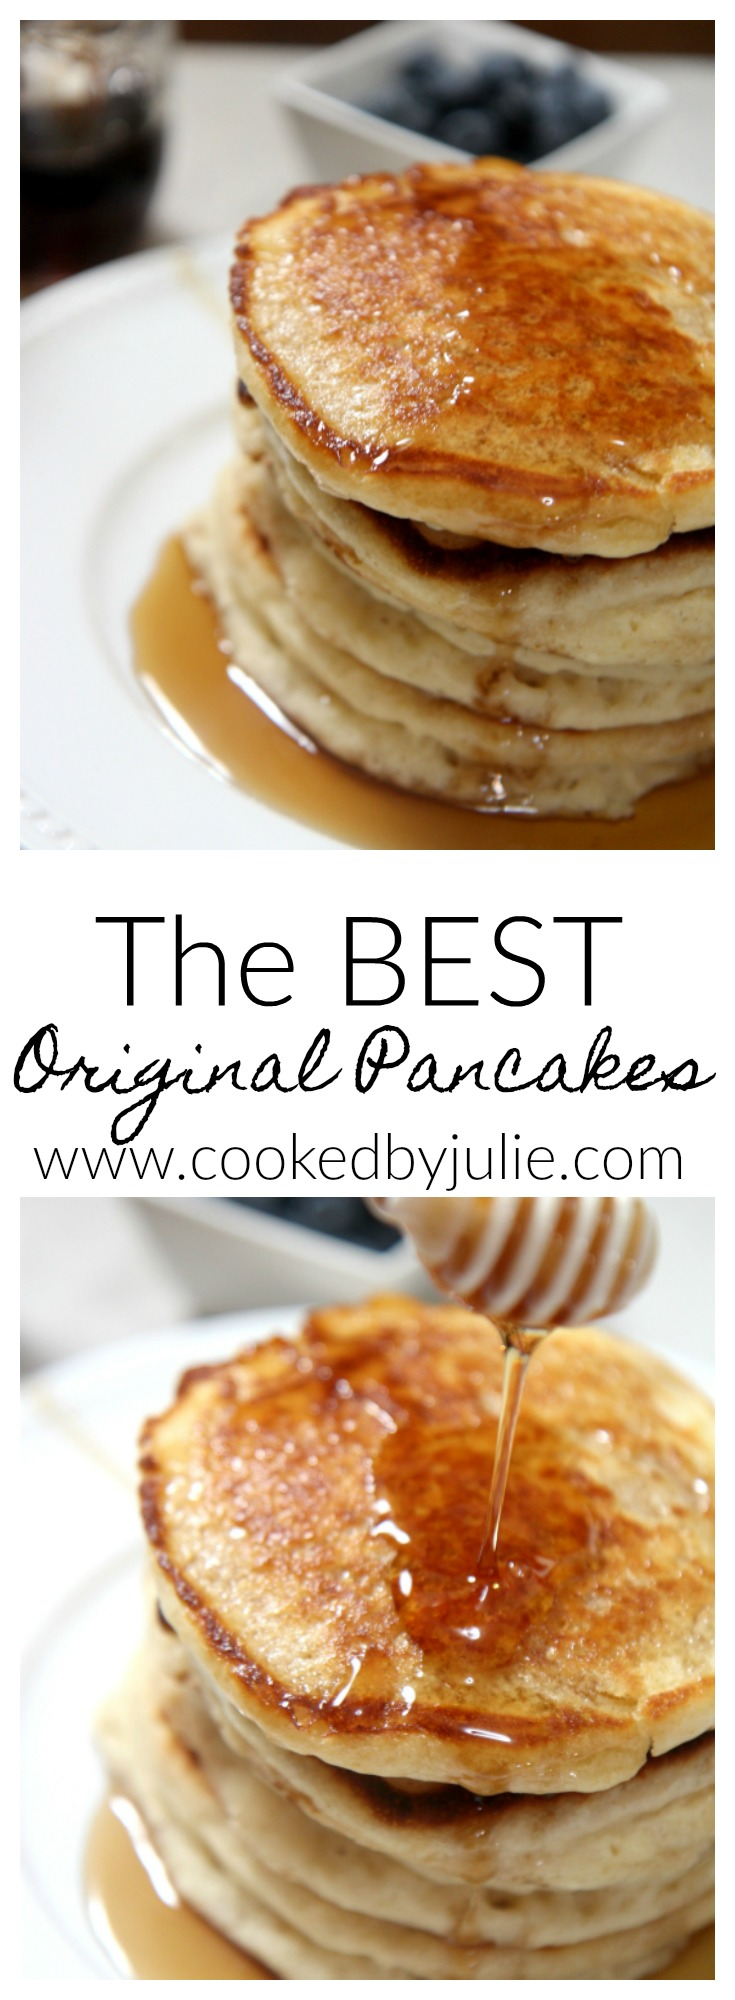 You can make the Best Original Pancakes with help from CookedByJulie.com